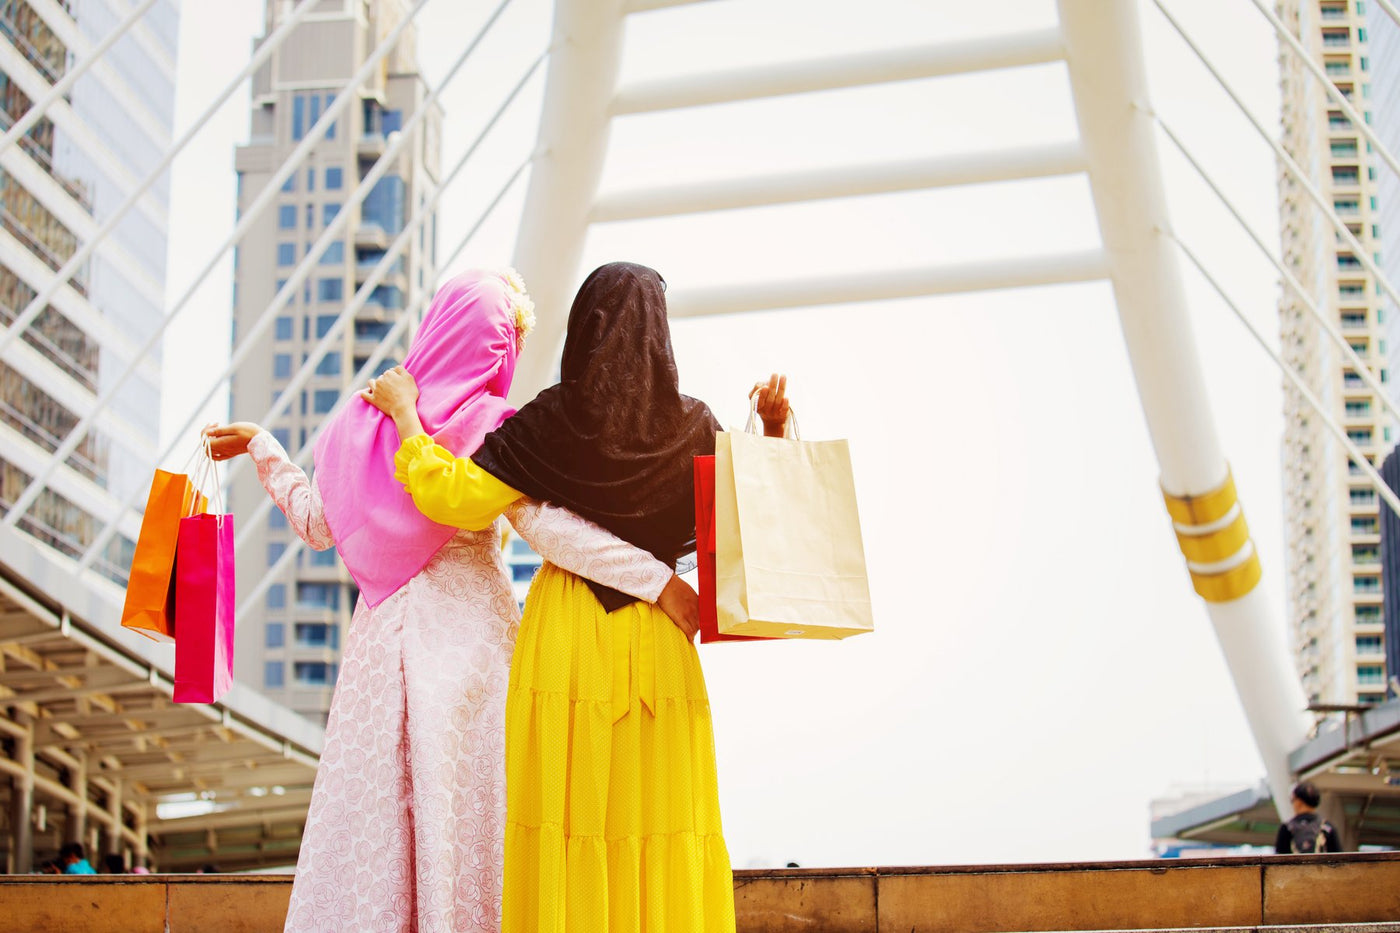 Everyday Accessories for the everyday Muslima